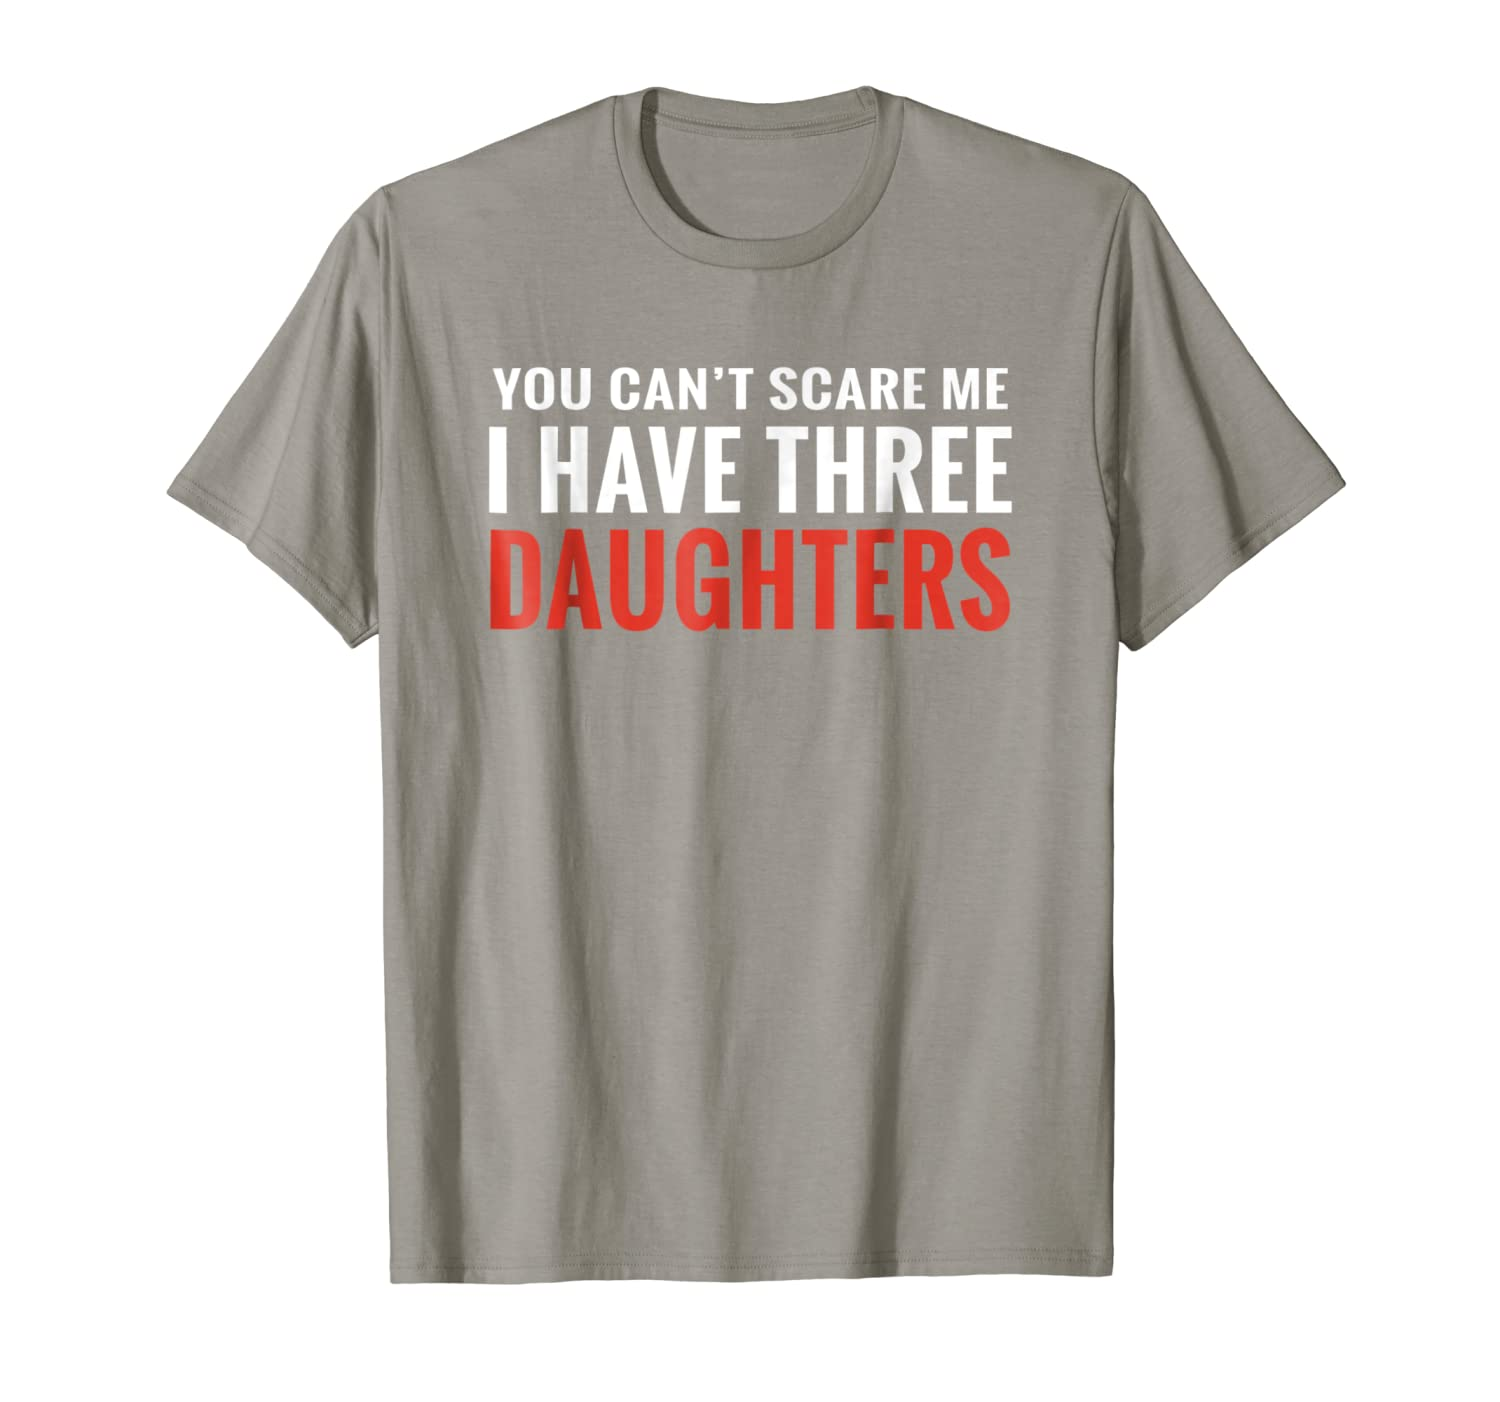 4fa60ef2 Amazon.com: You Can't Scare Me I Have Three Daughters T-shirt: Clothing